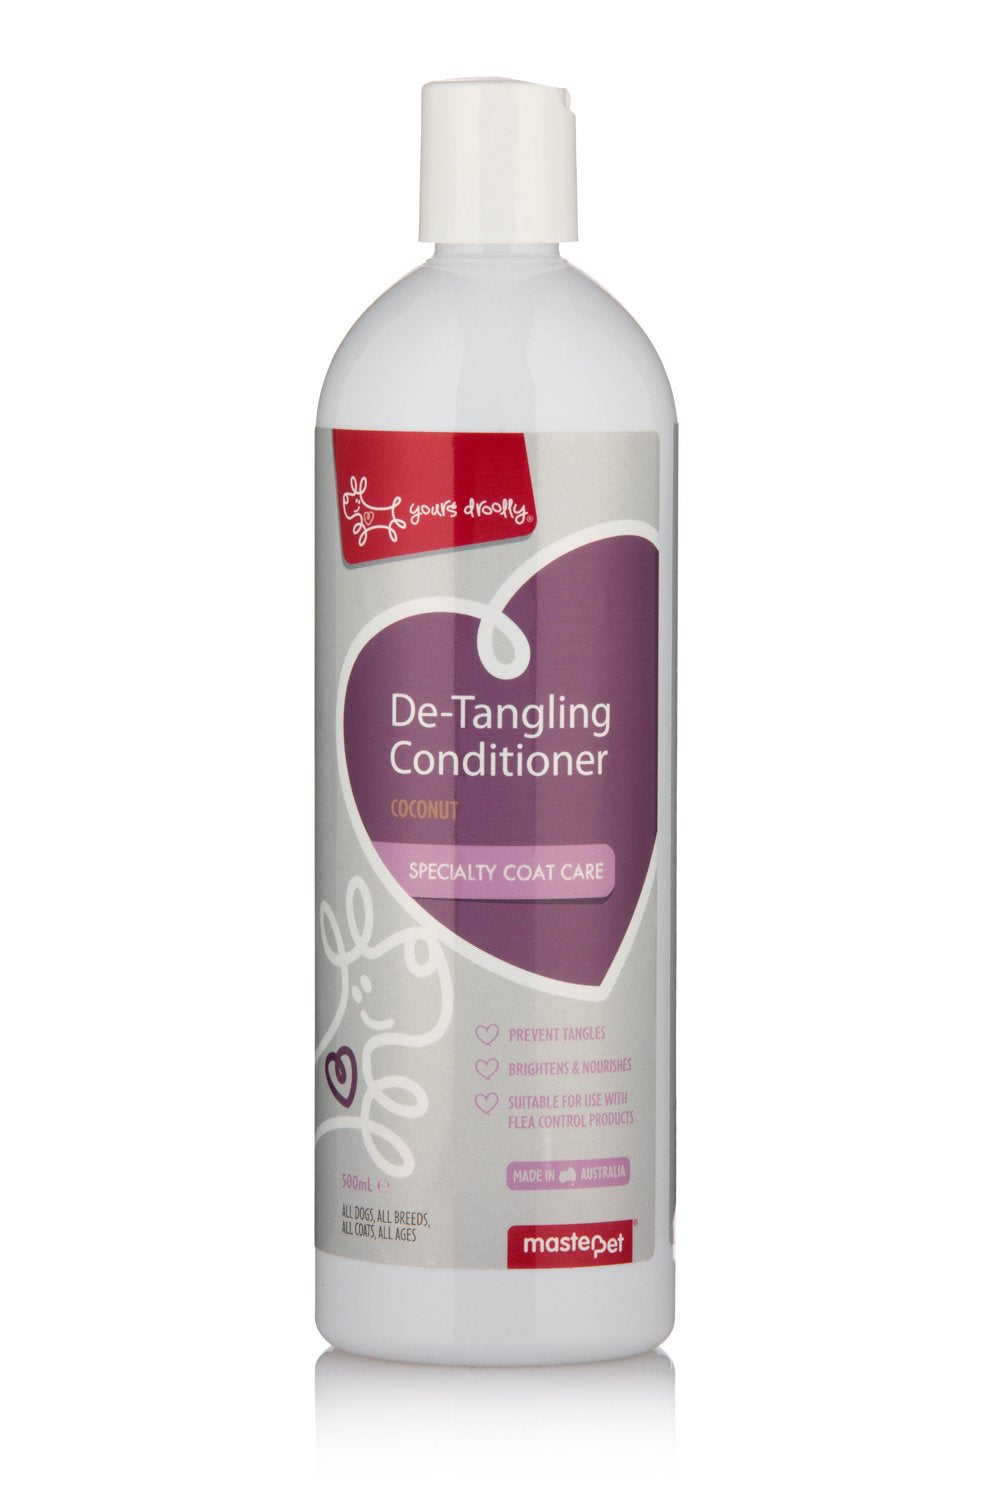 Yours Droolly Detangling Conditioner 500ml - RSPCA VIC